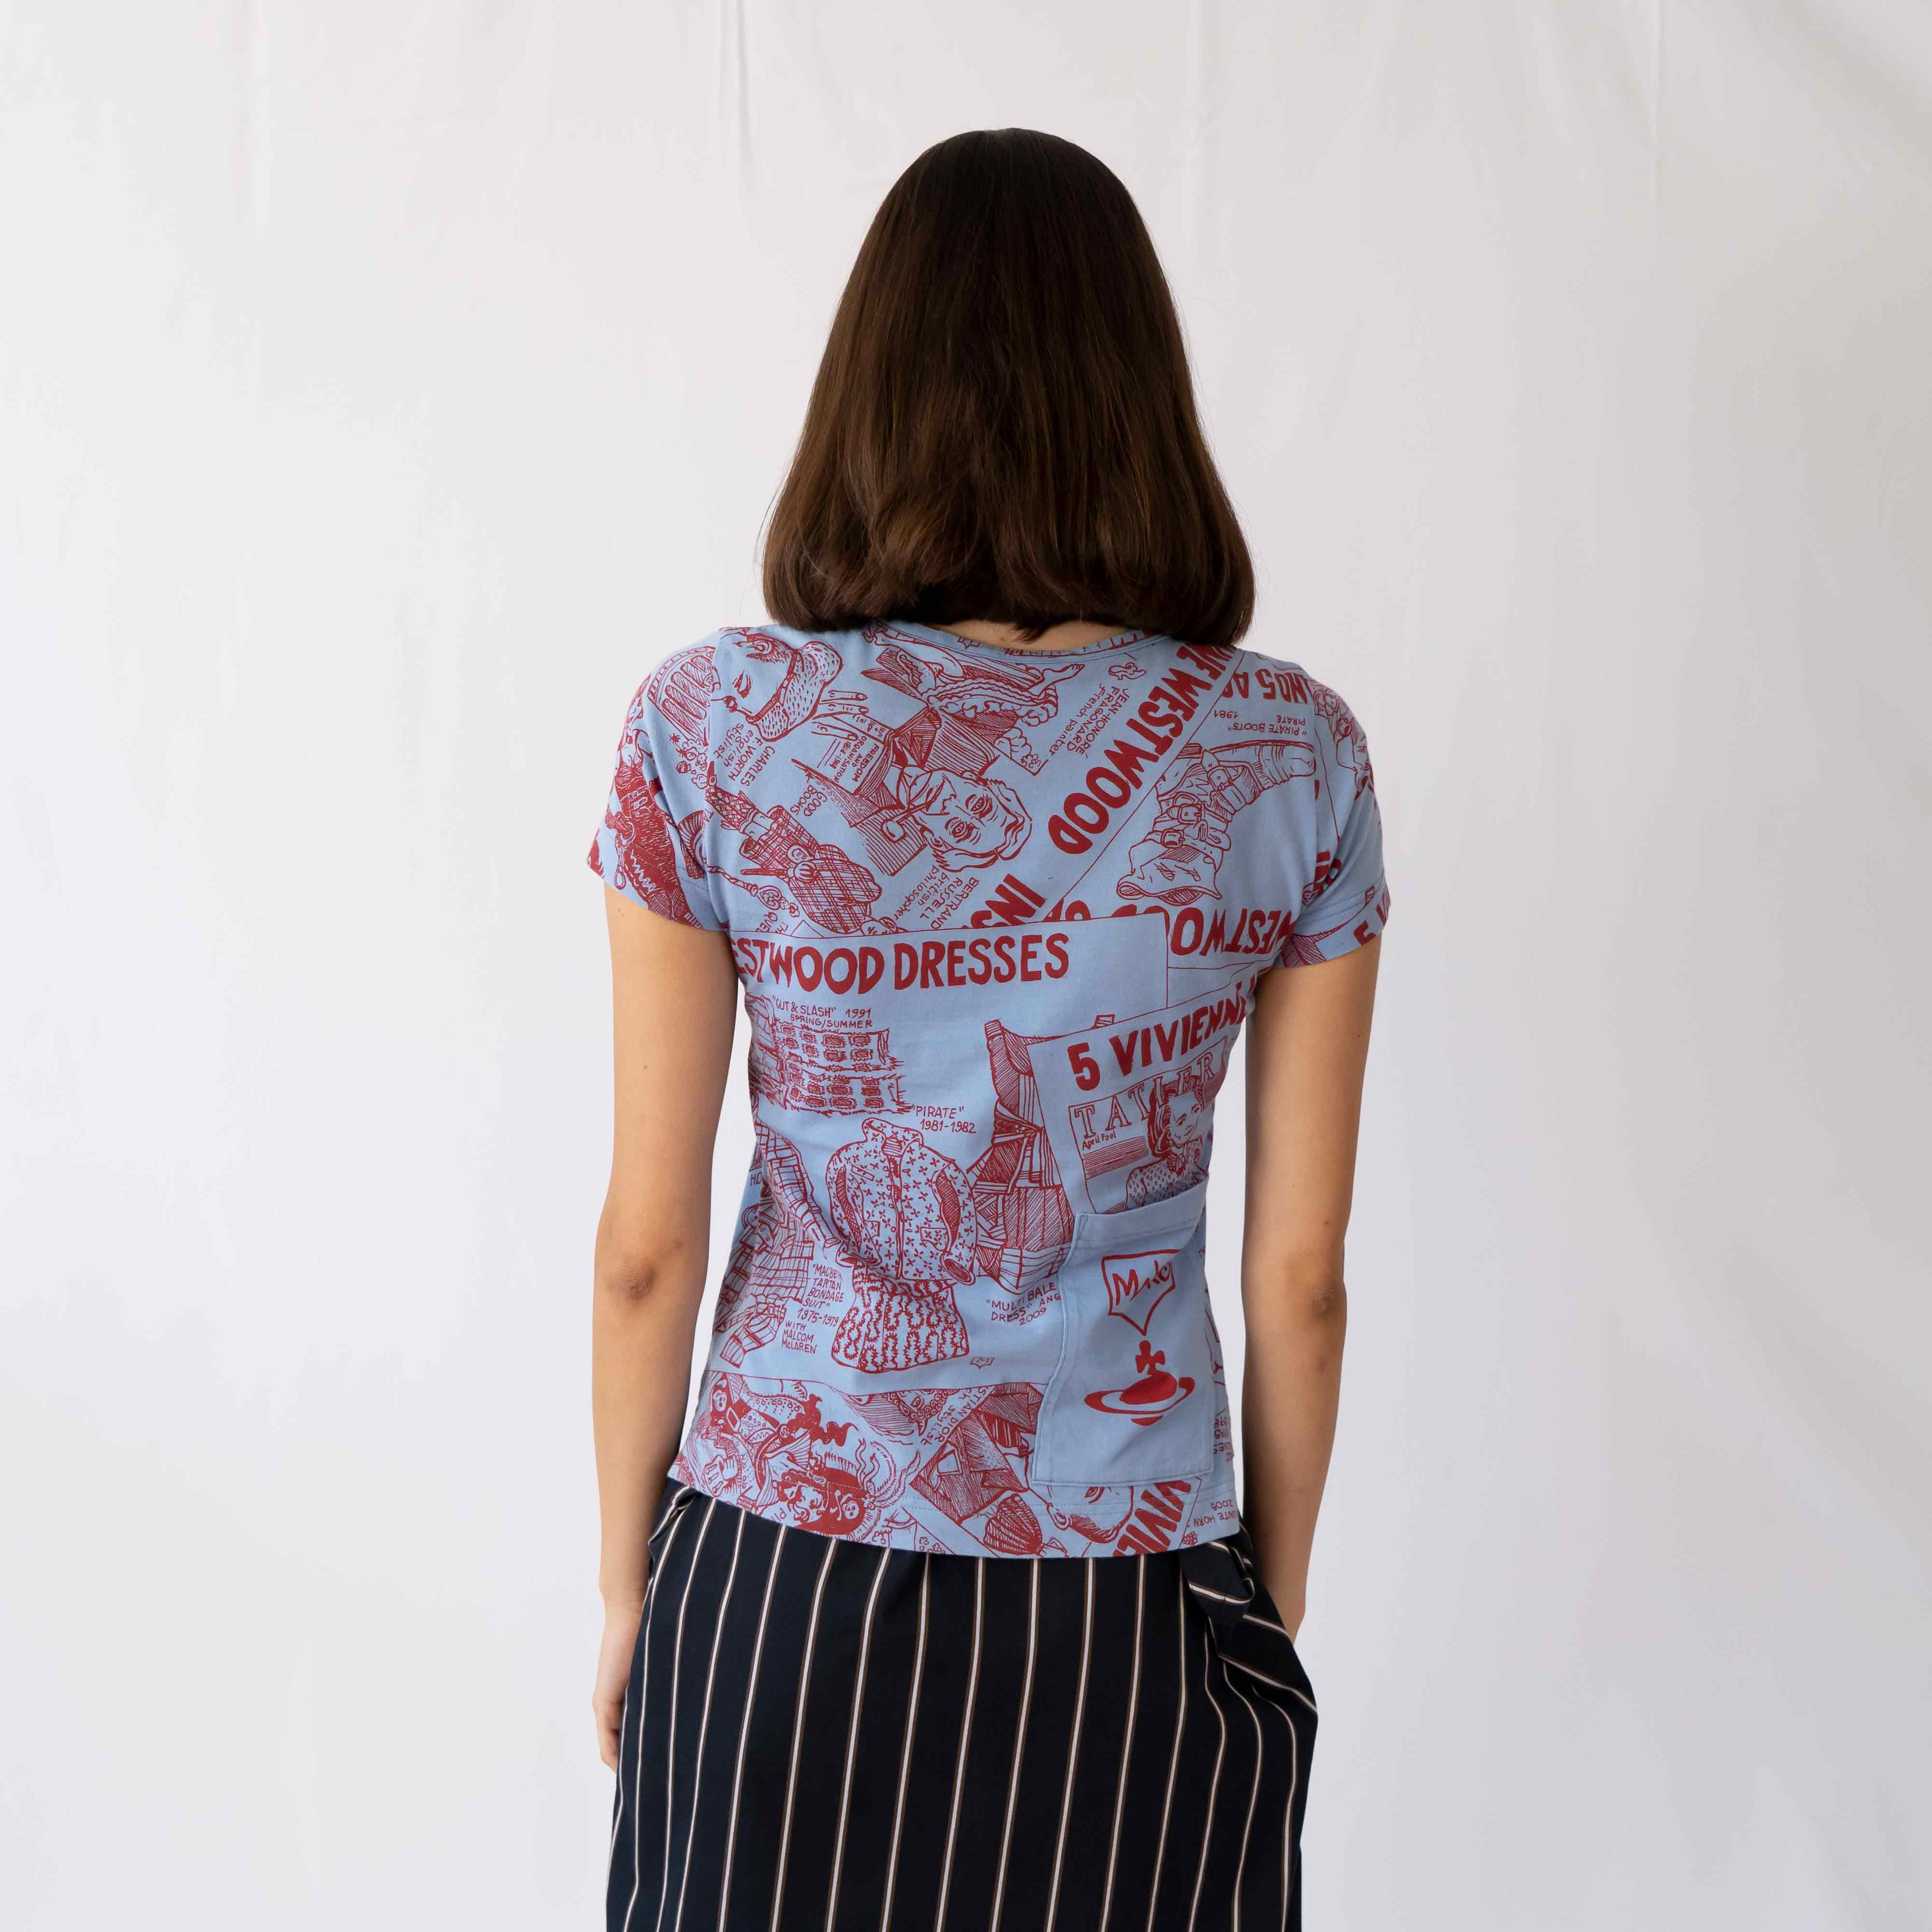 Cool and eclectic, this comic tee is perfect for a lazy day outfit where you still want to look fabulous.